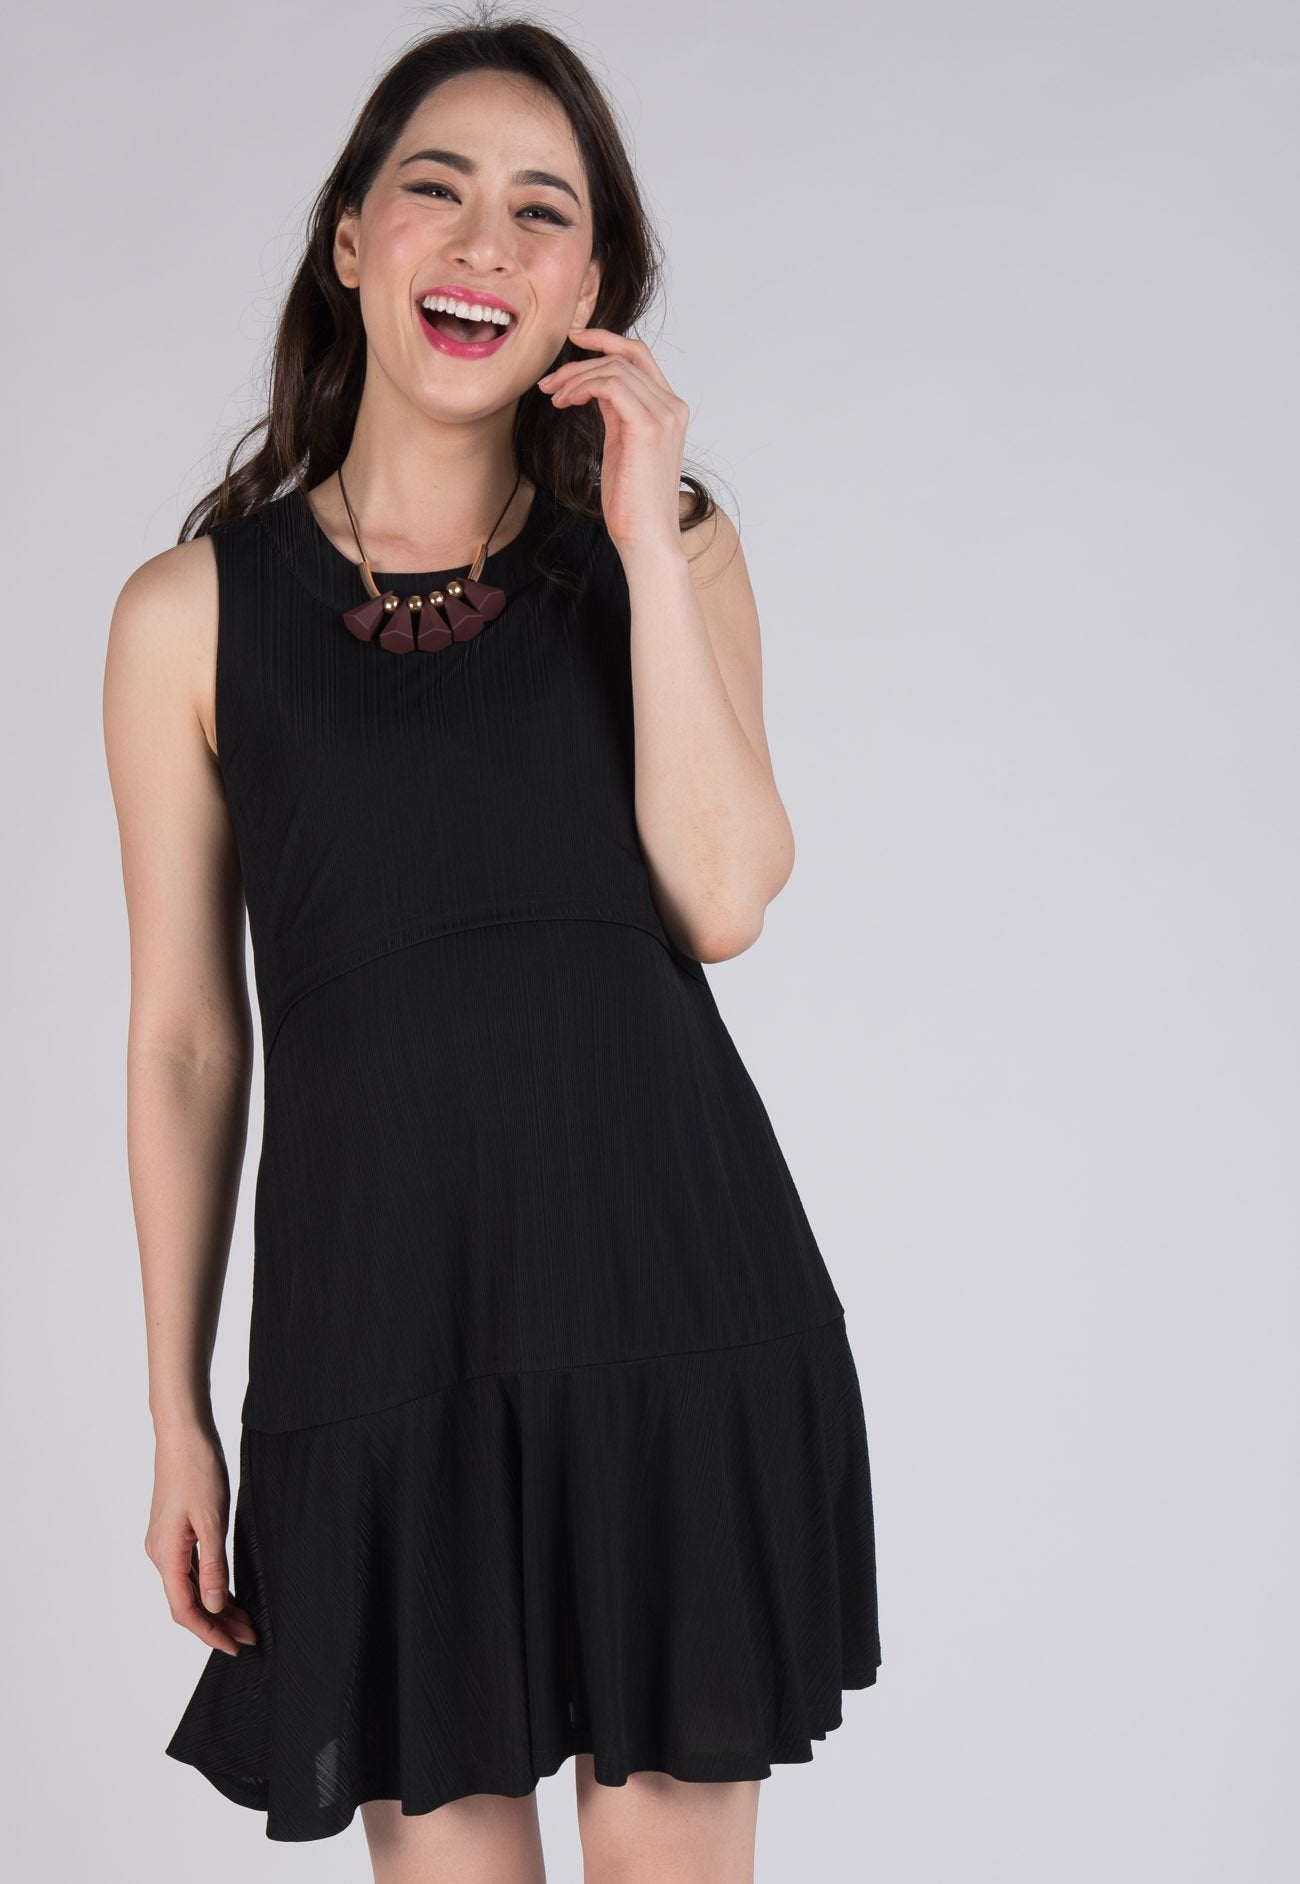 Mothercot Black Mystic Drop Waist Nursing Dress  by JumpEatCry - Maternity and nursing wear